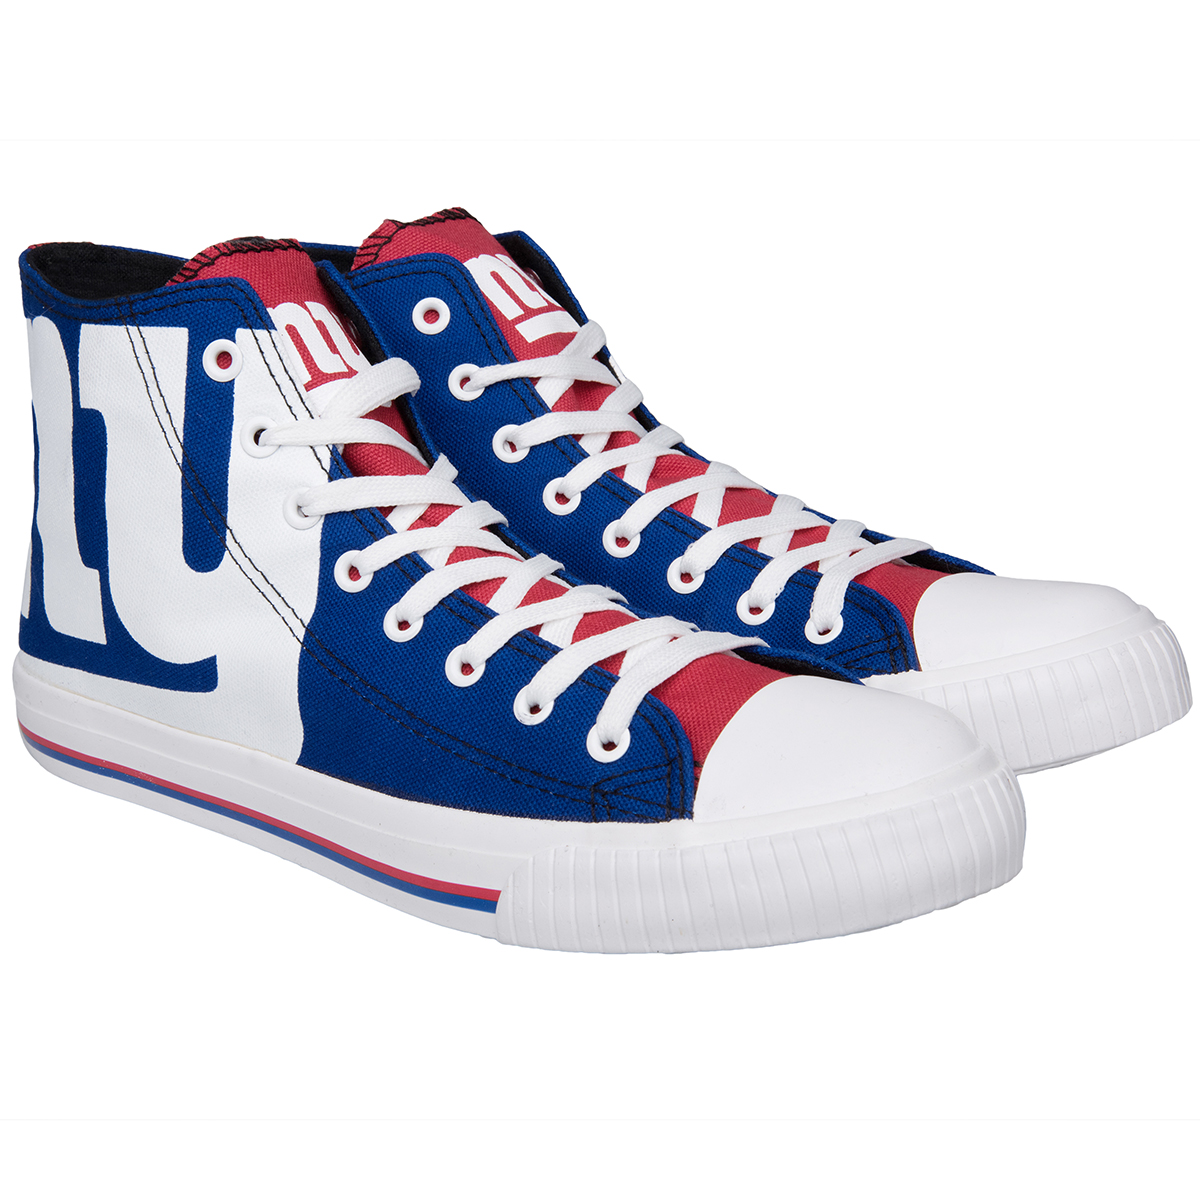 New York Giants Men's Big Logo High-Top Canvas Sneakers - Blue, 12